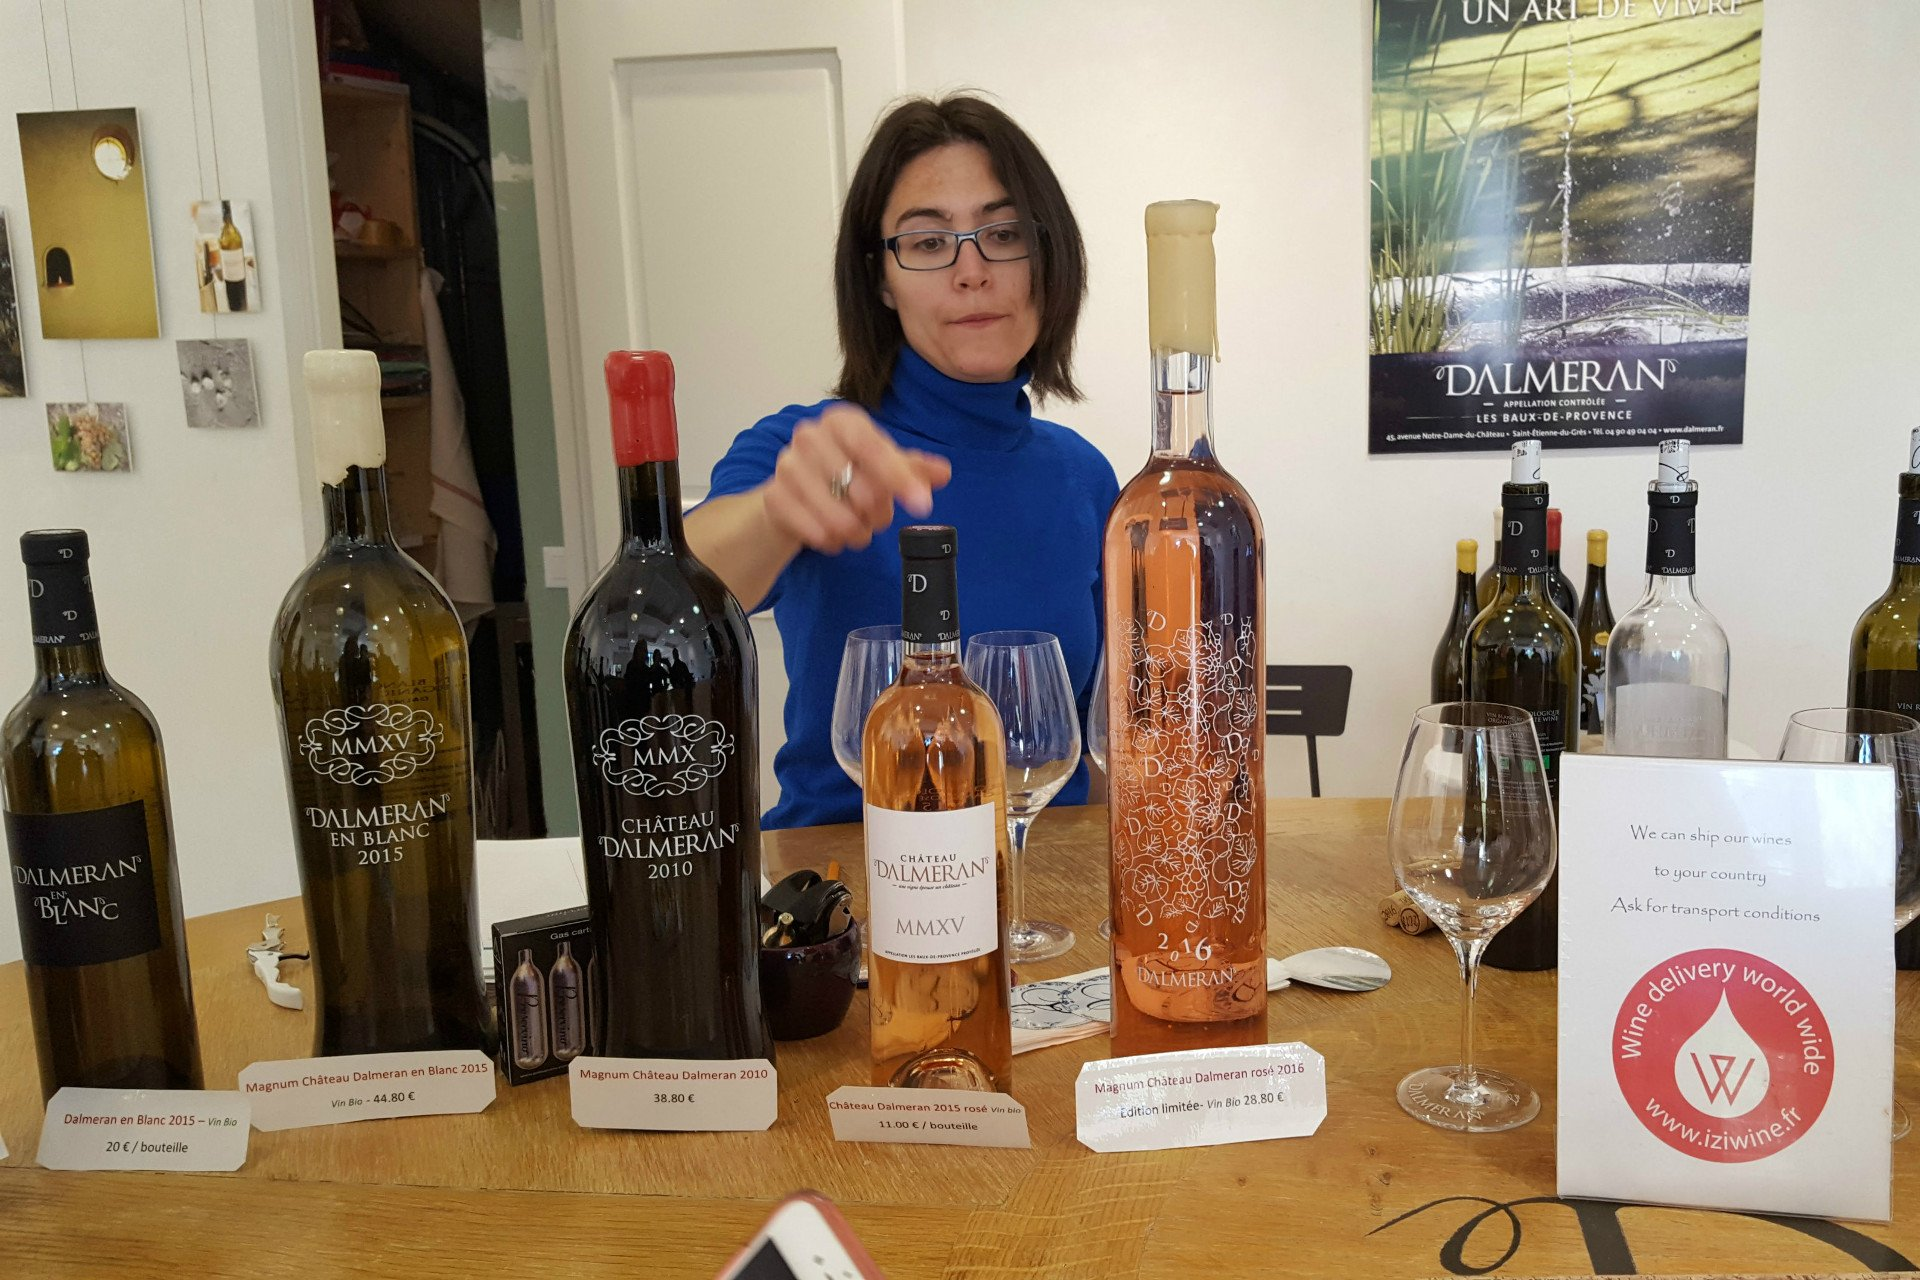 woman-wines-Saint Remy de Provence-Alpilles-Provence-France